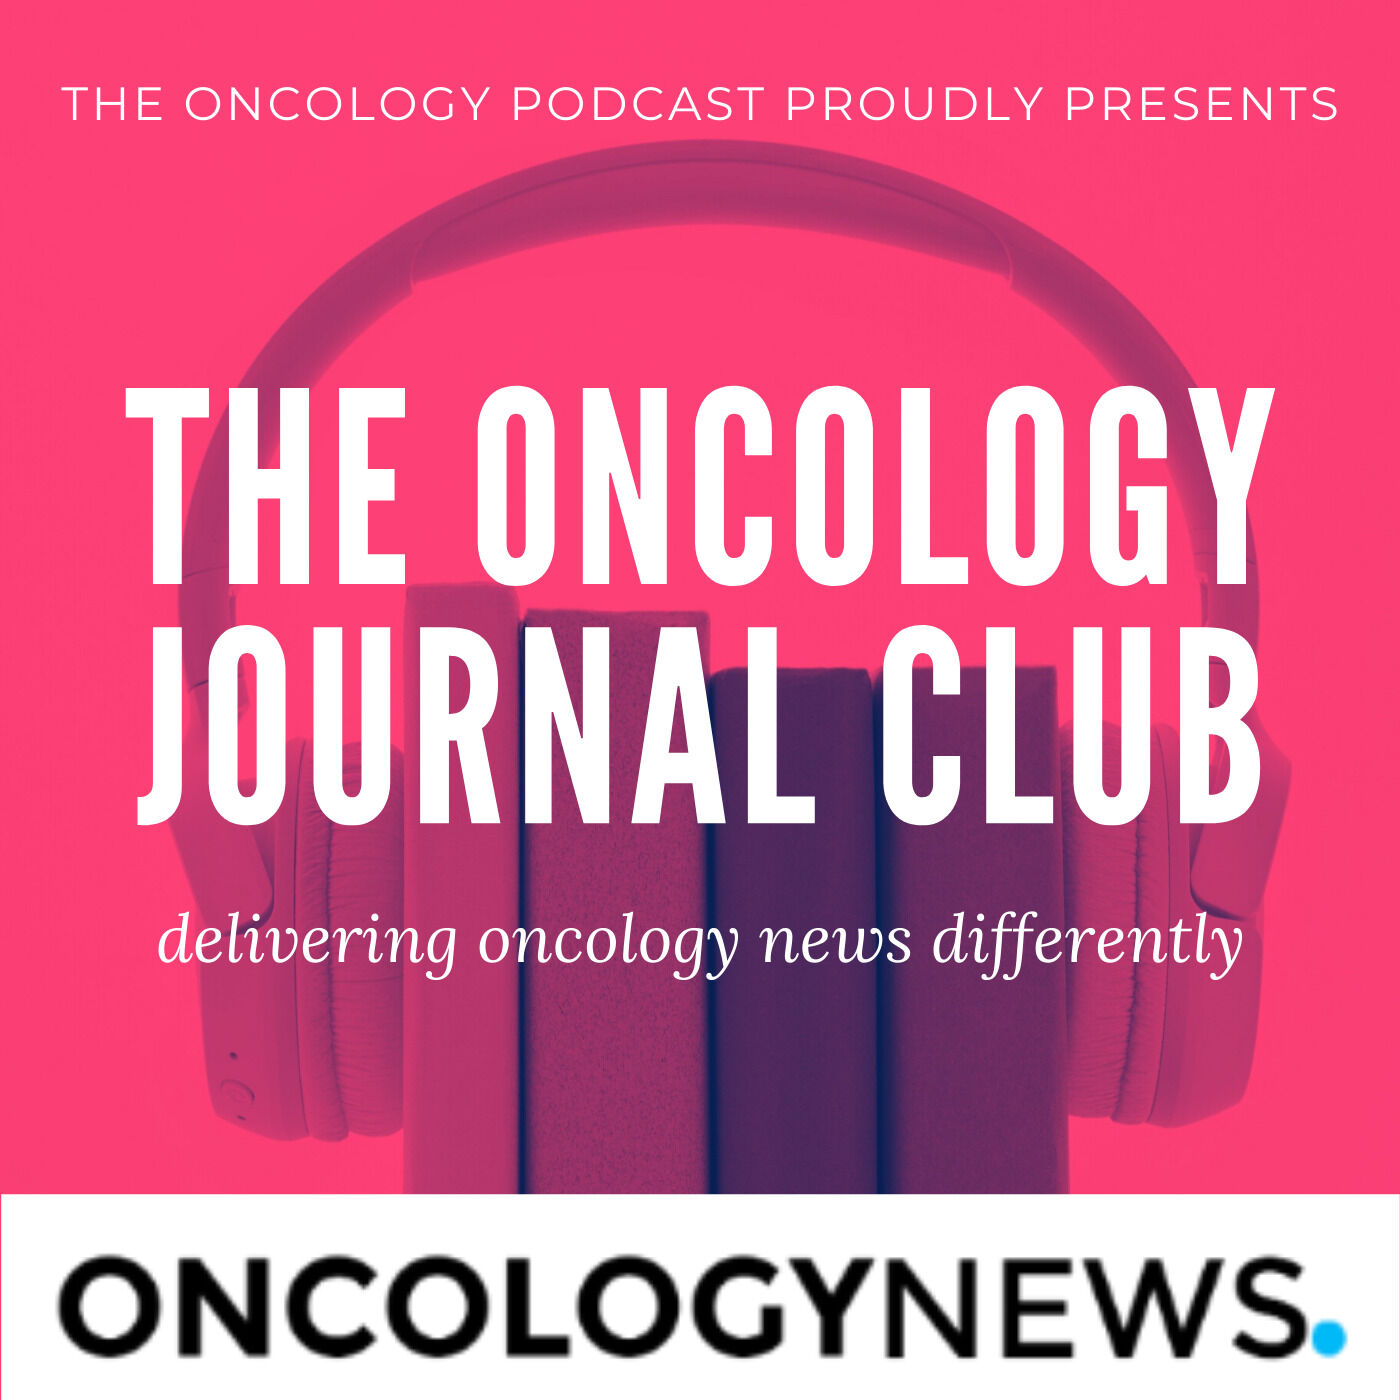 The Oncology Journal Club Episode 6: GI Update with Fotios Loupakis, Assessing Value in Prostate Cancer Drugs, monarcHER and FAST-Forward, Quick Bites and much more...